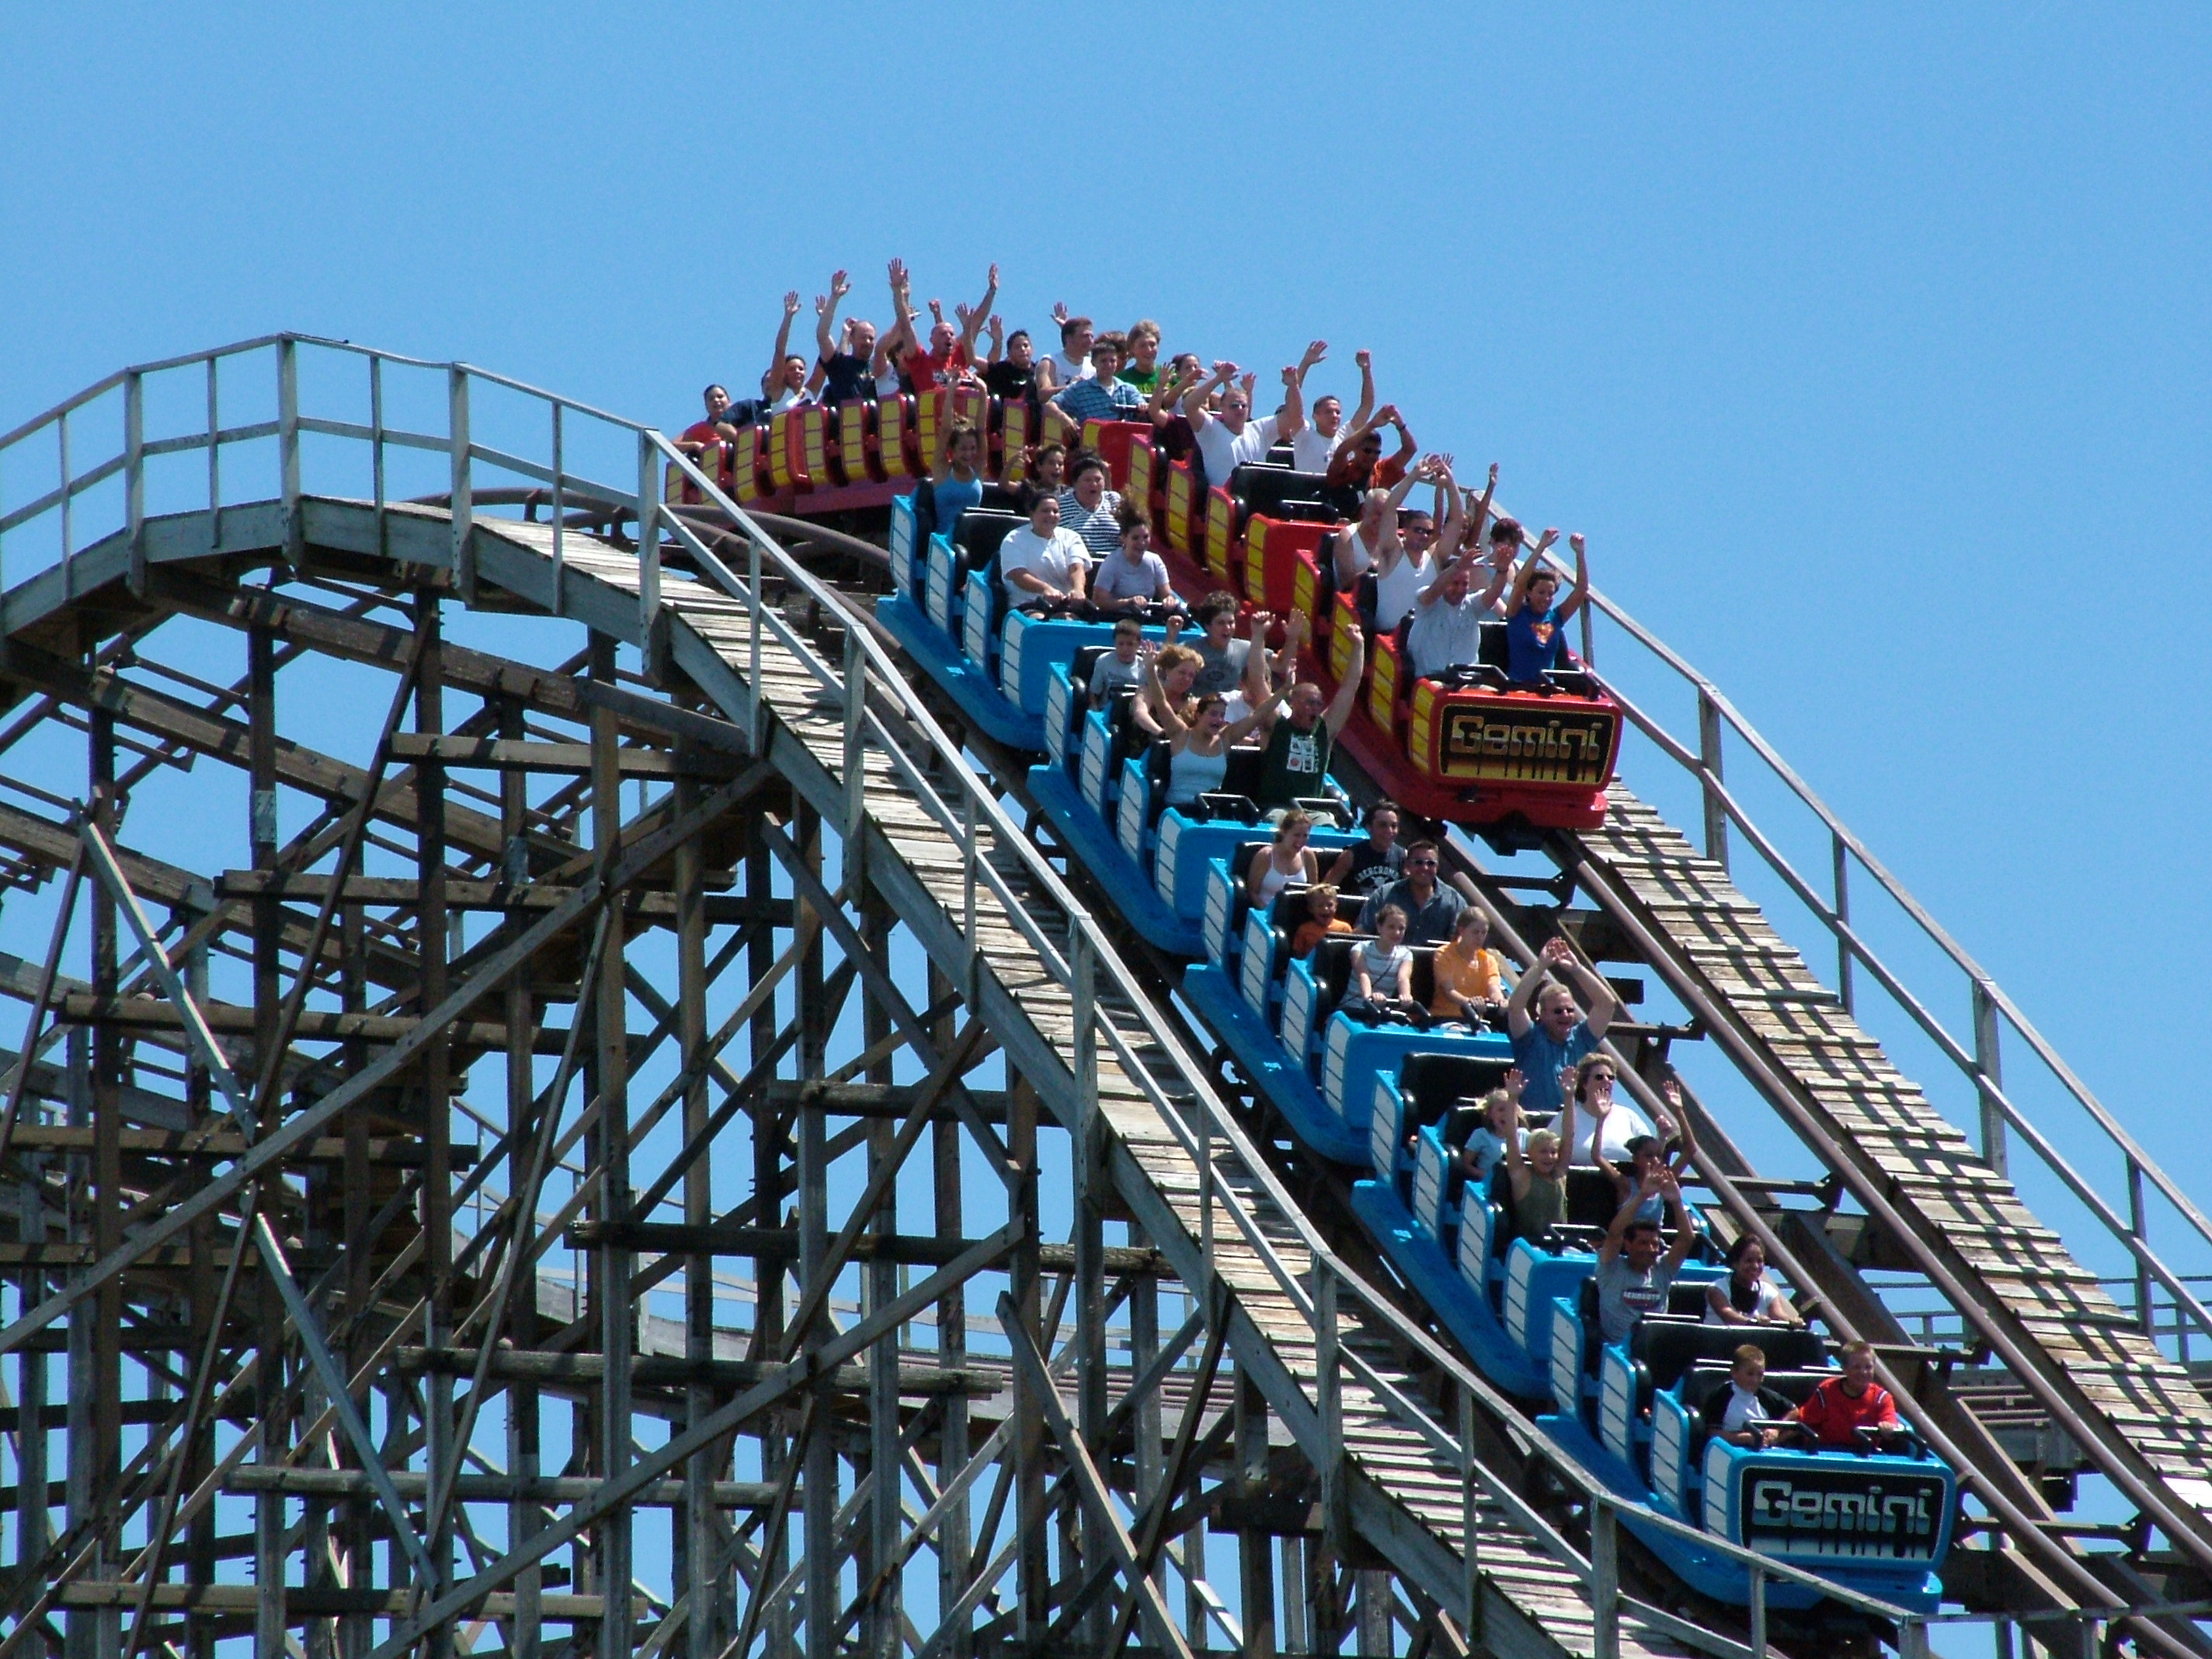 Jr gemini roller coaster - photo#23